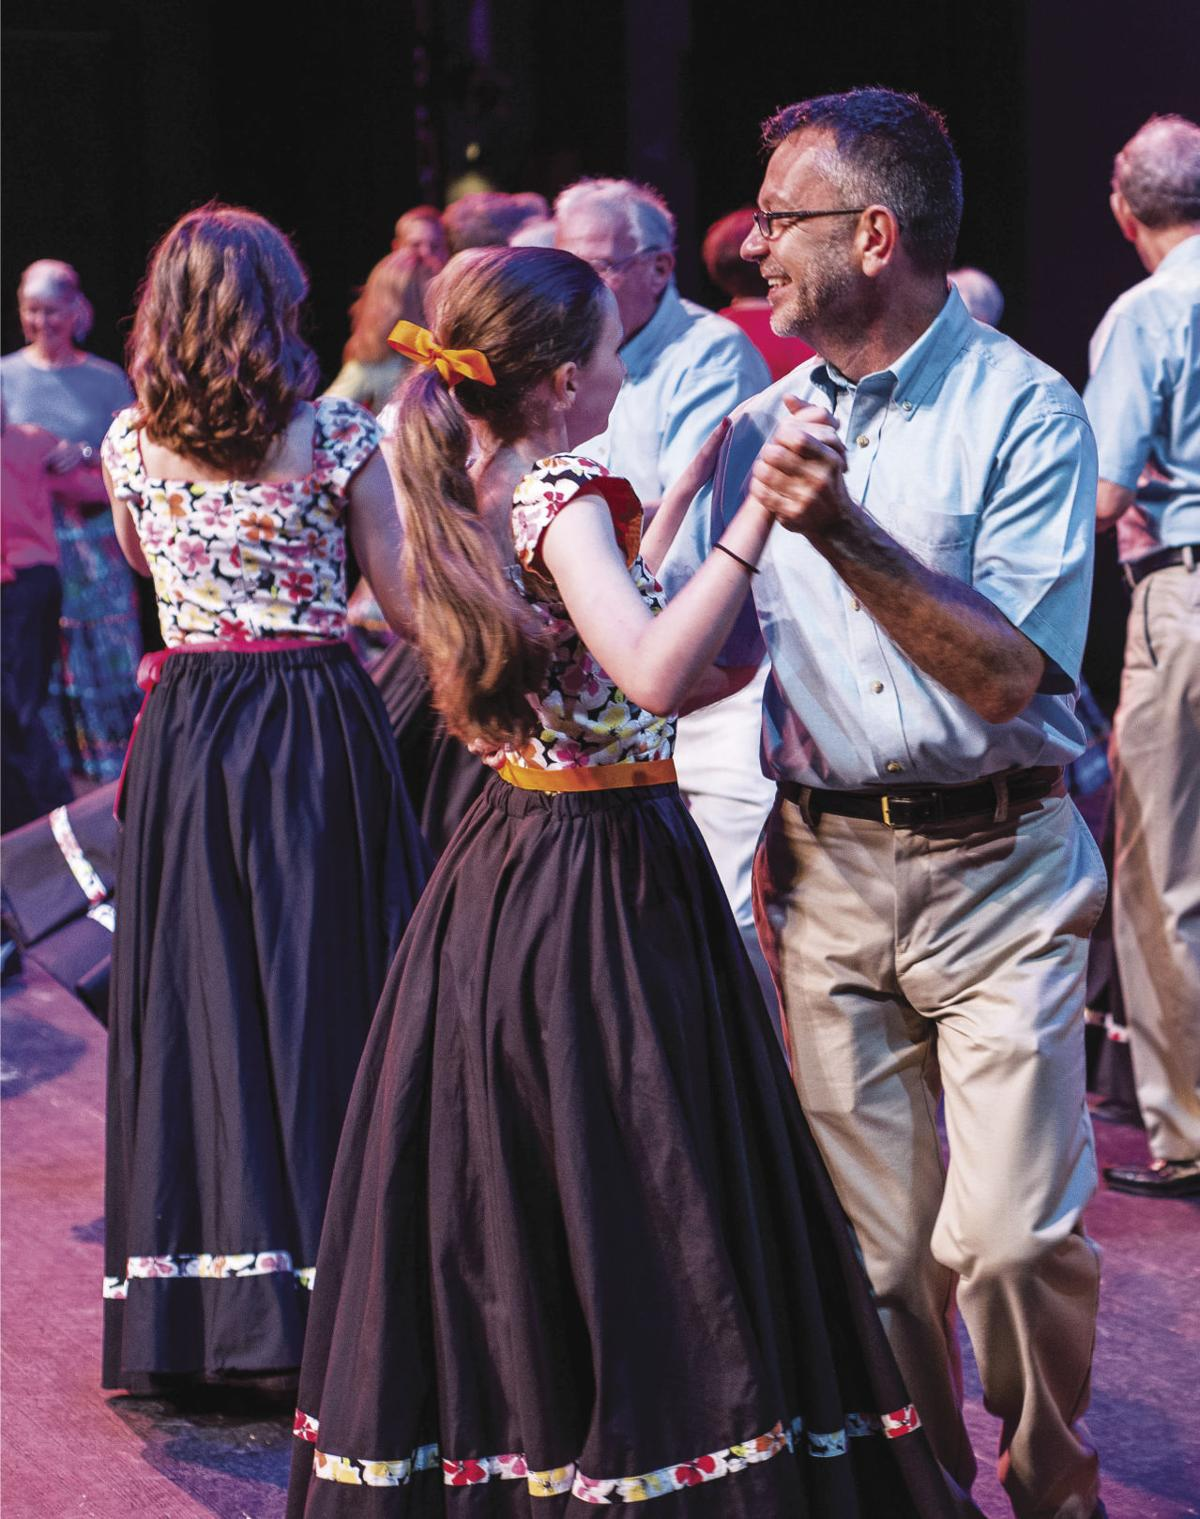 MDFF14_Cole-Mountain Cloggers-with-Folk-Heritage-Smooth-Dancers_Photo-Wendy-Olsen.jpg